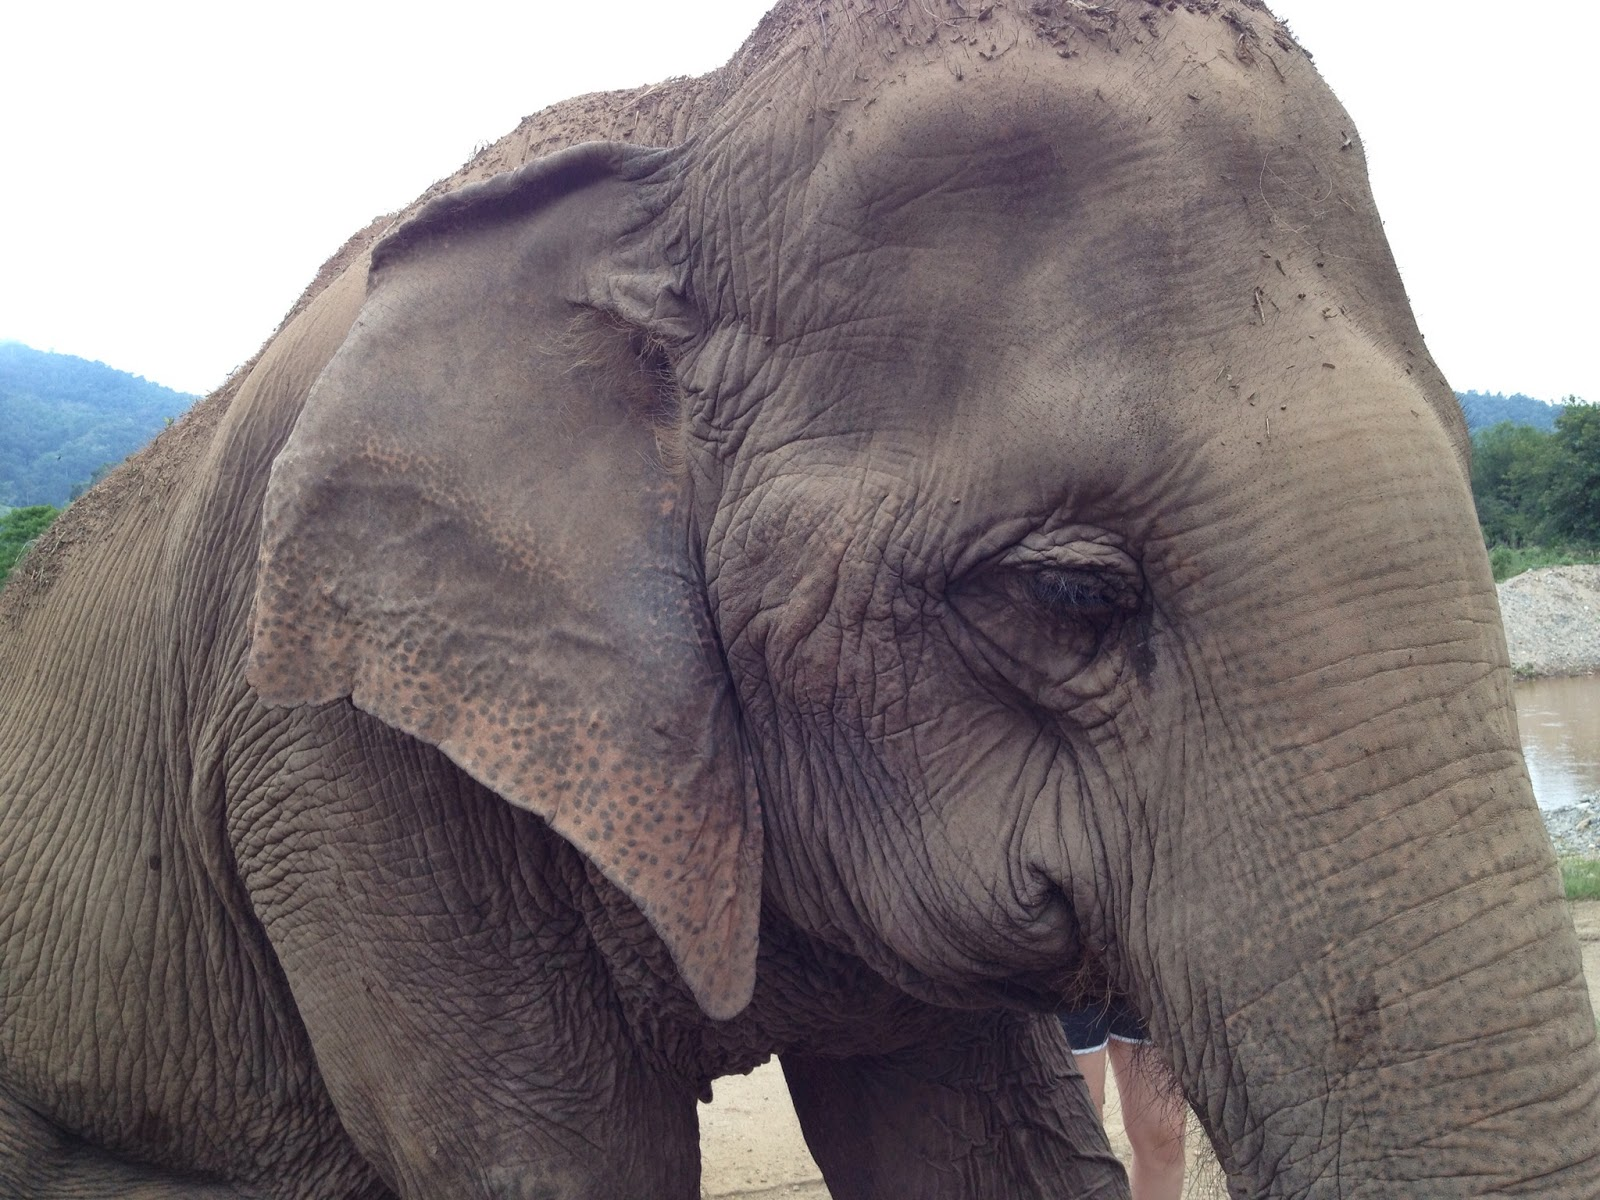 Chiang Mai - Elephant with a displaced hip